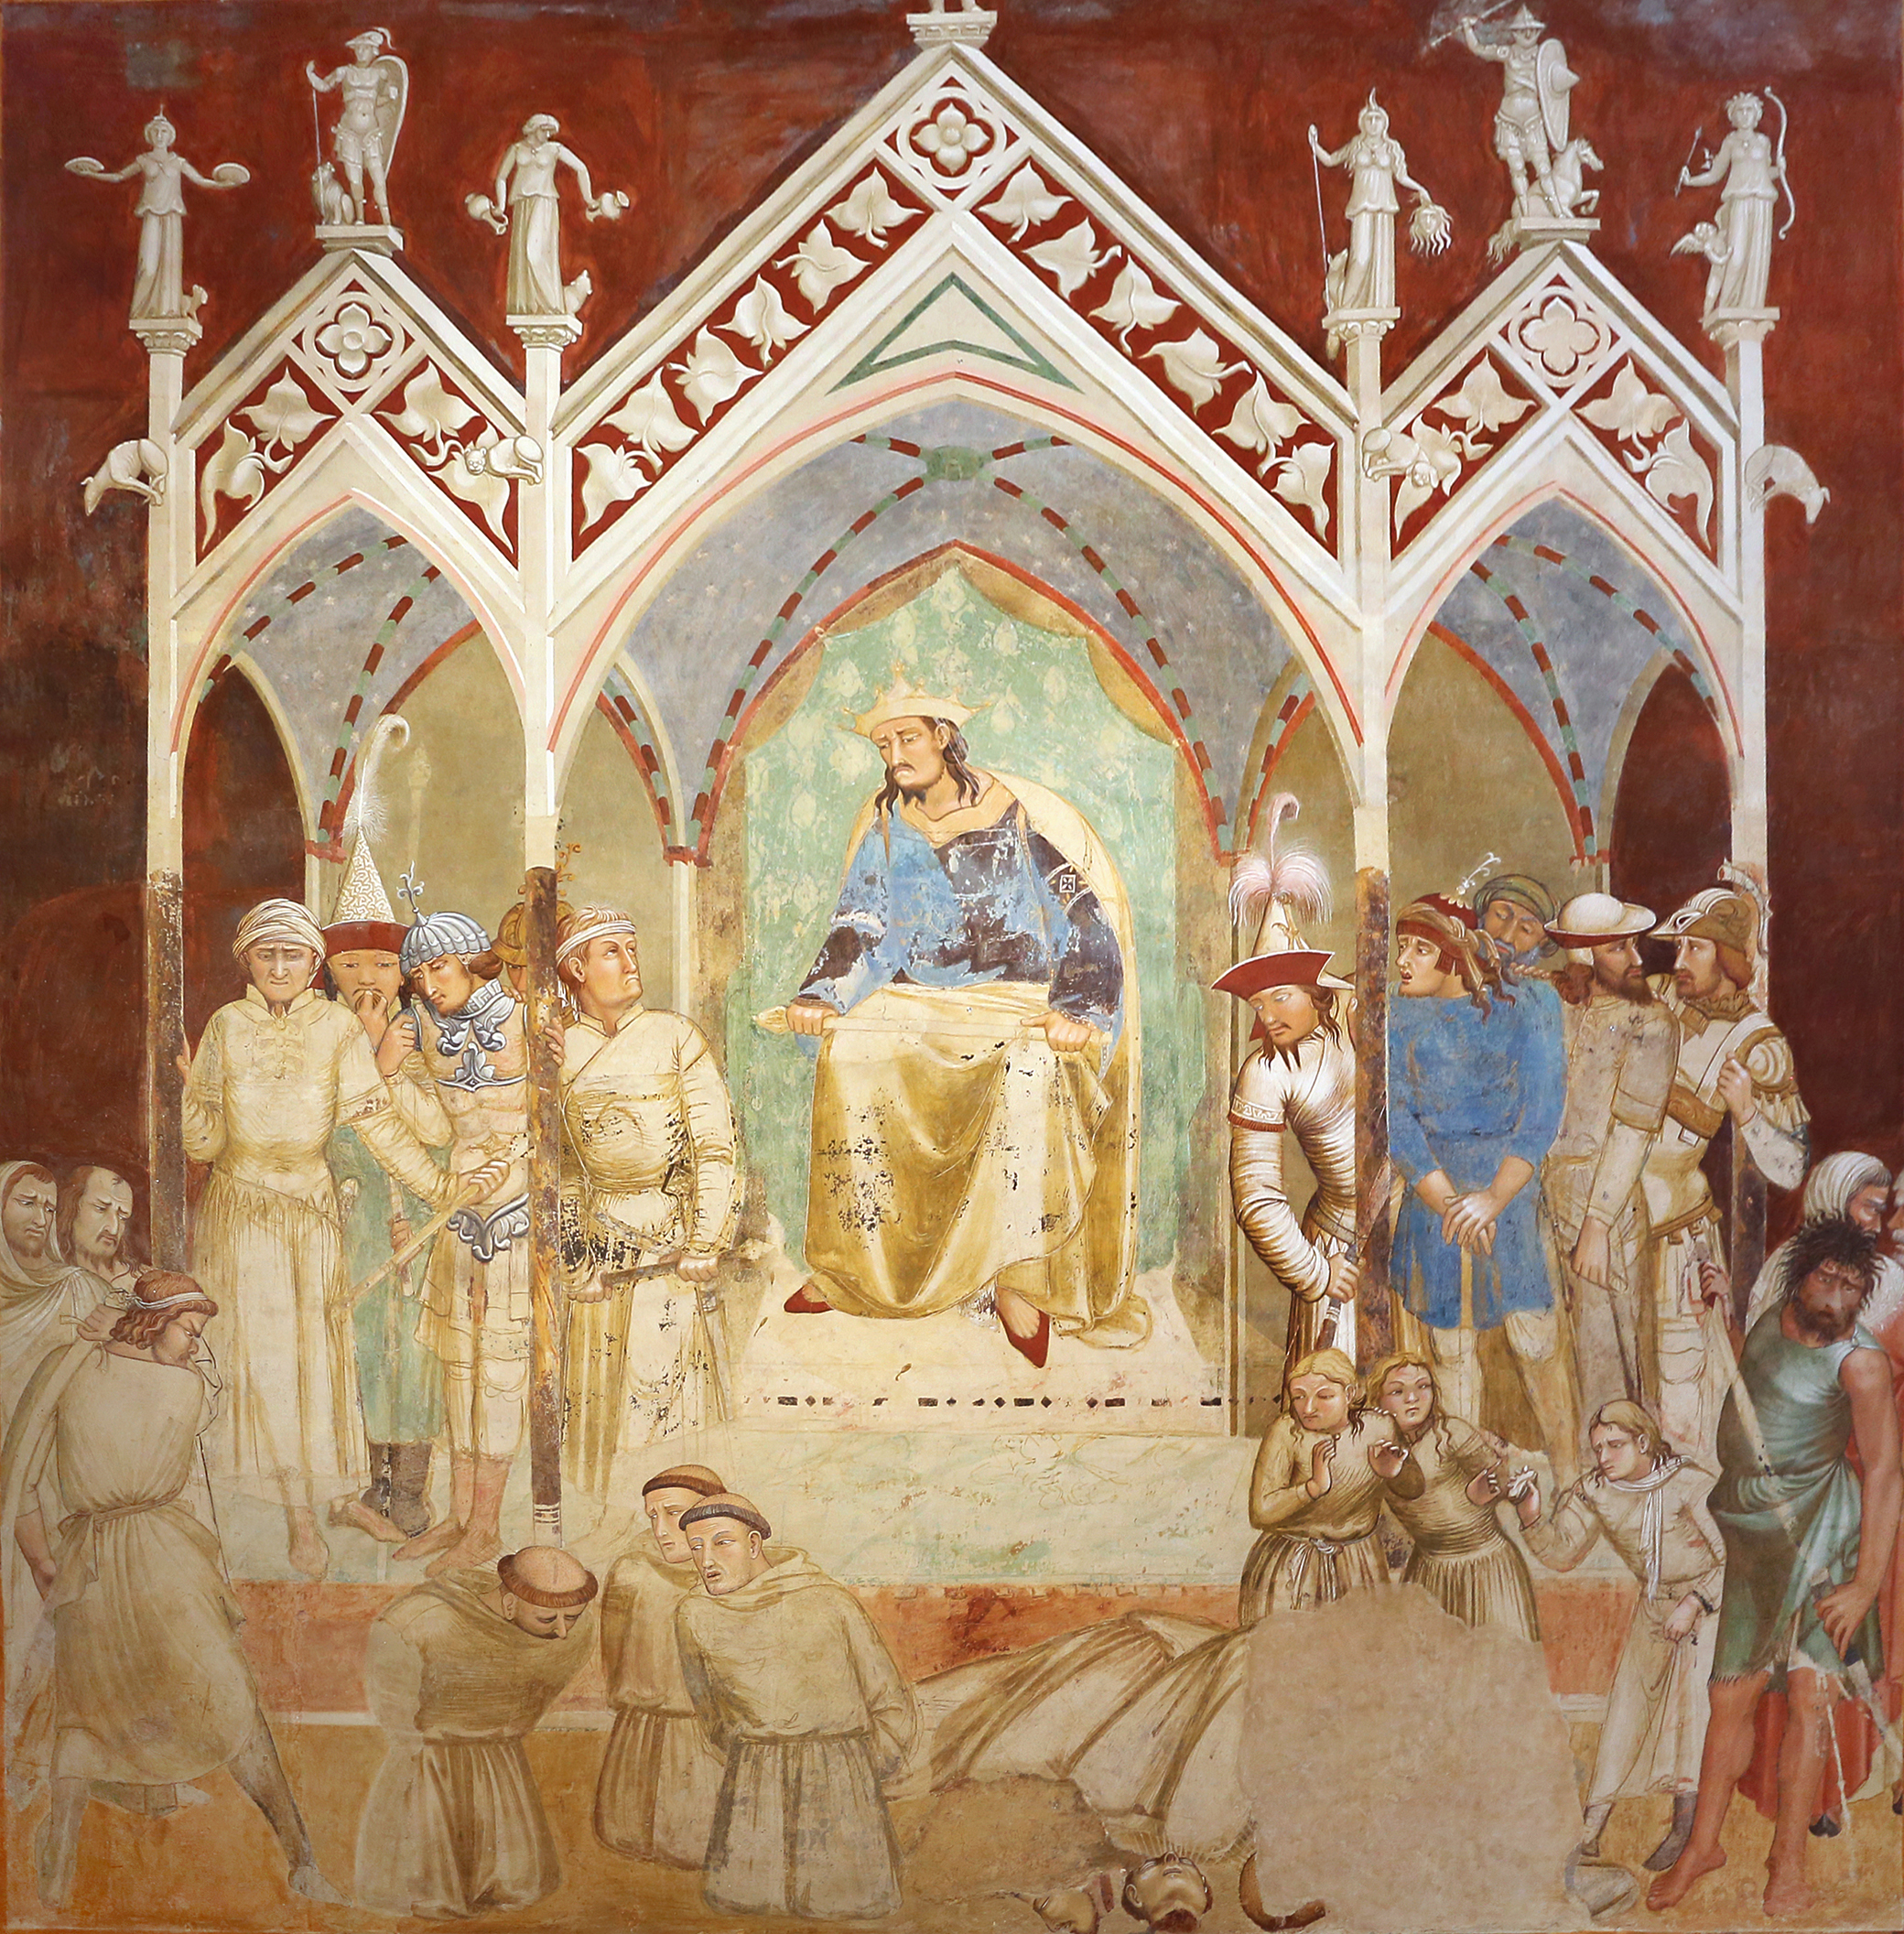 The Martyrdom of the Franciscans, fresco by Ambrogio Lorenzetti, c. 1330. Photograph by Saliko.